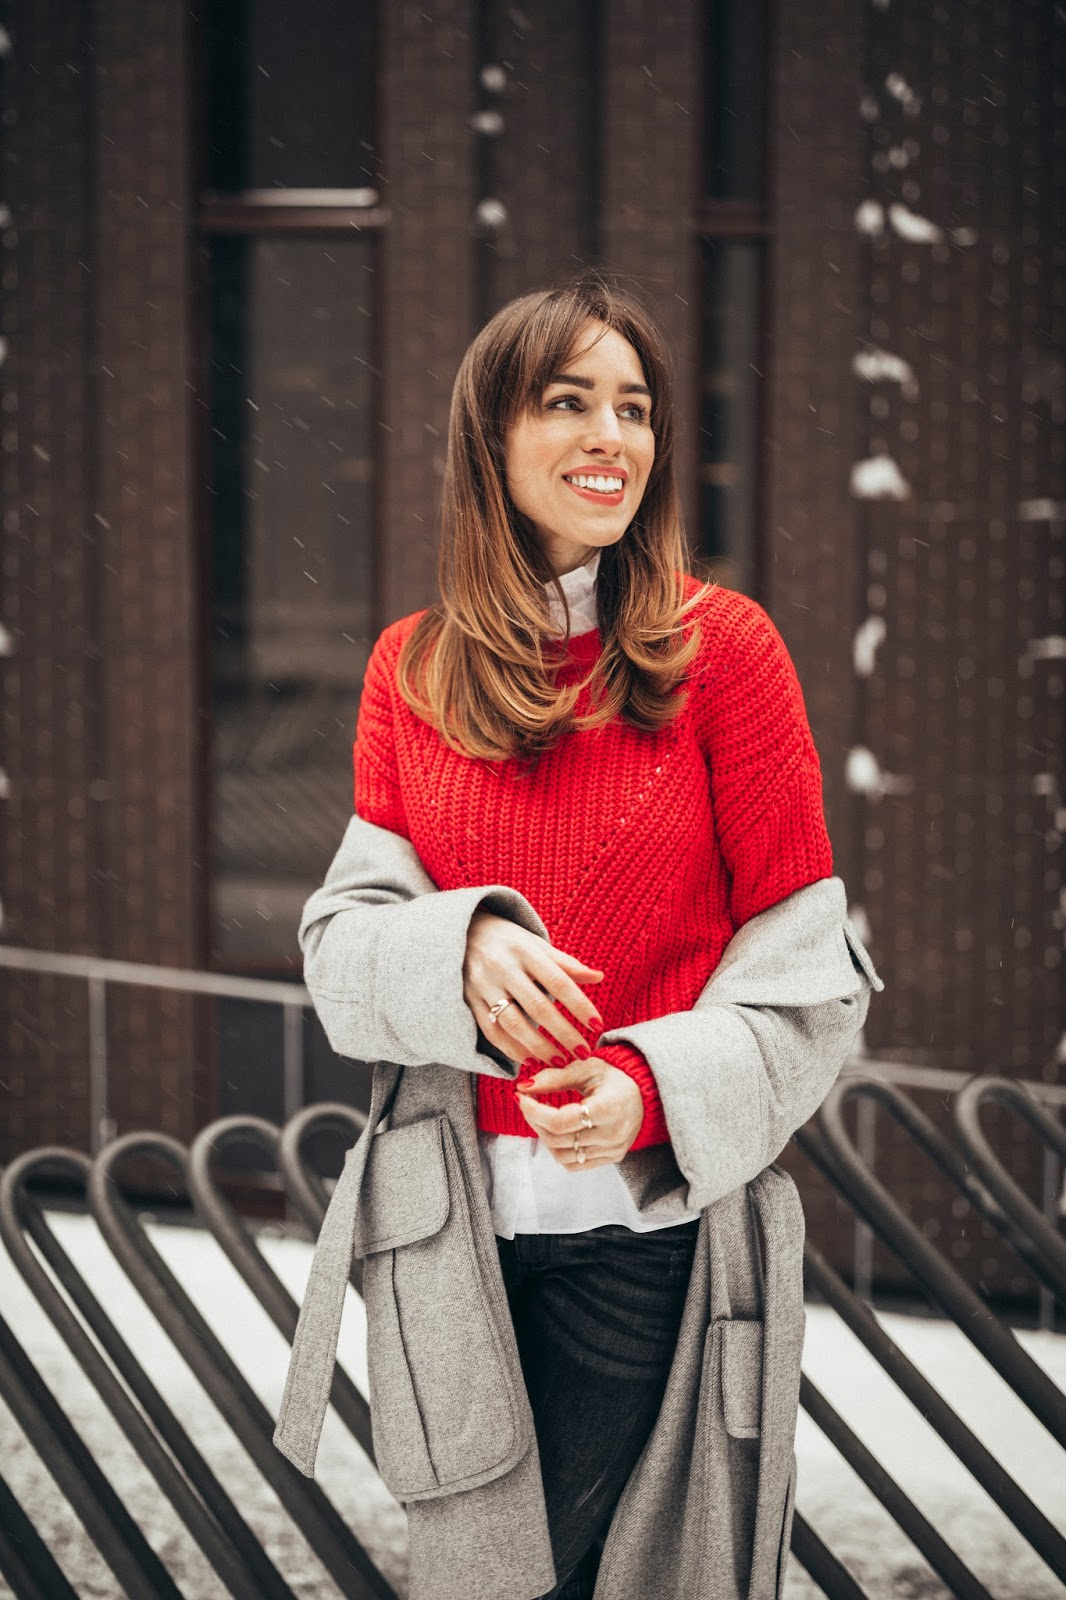 red sweater outfit winter